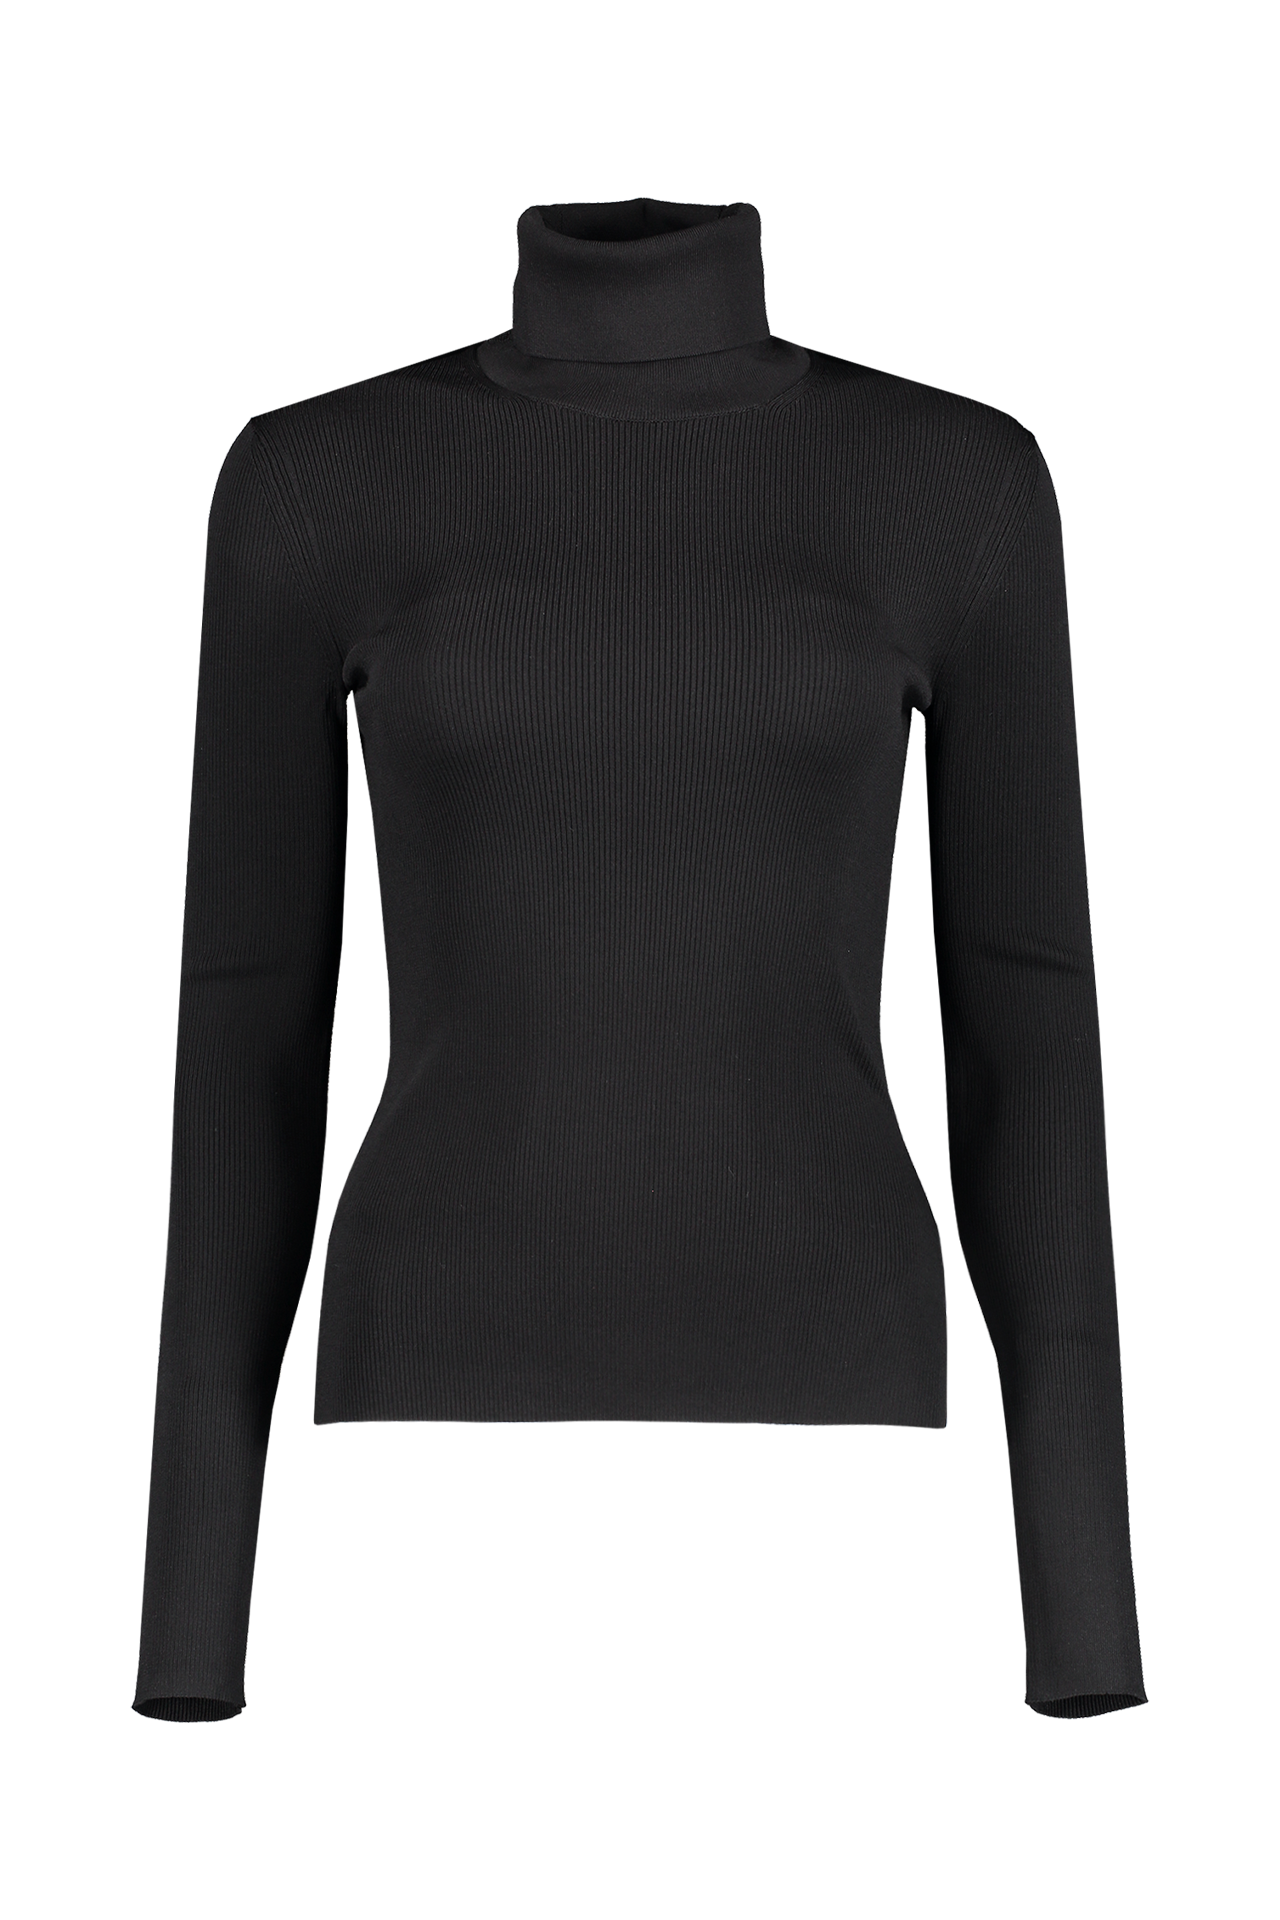 Front detail image of Helmut Lang Women's Viscose Stretch T-Neck Black